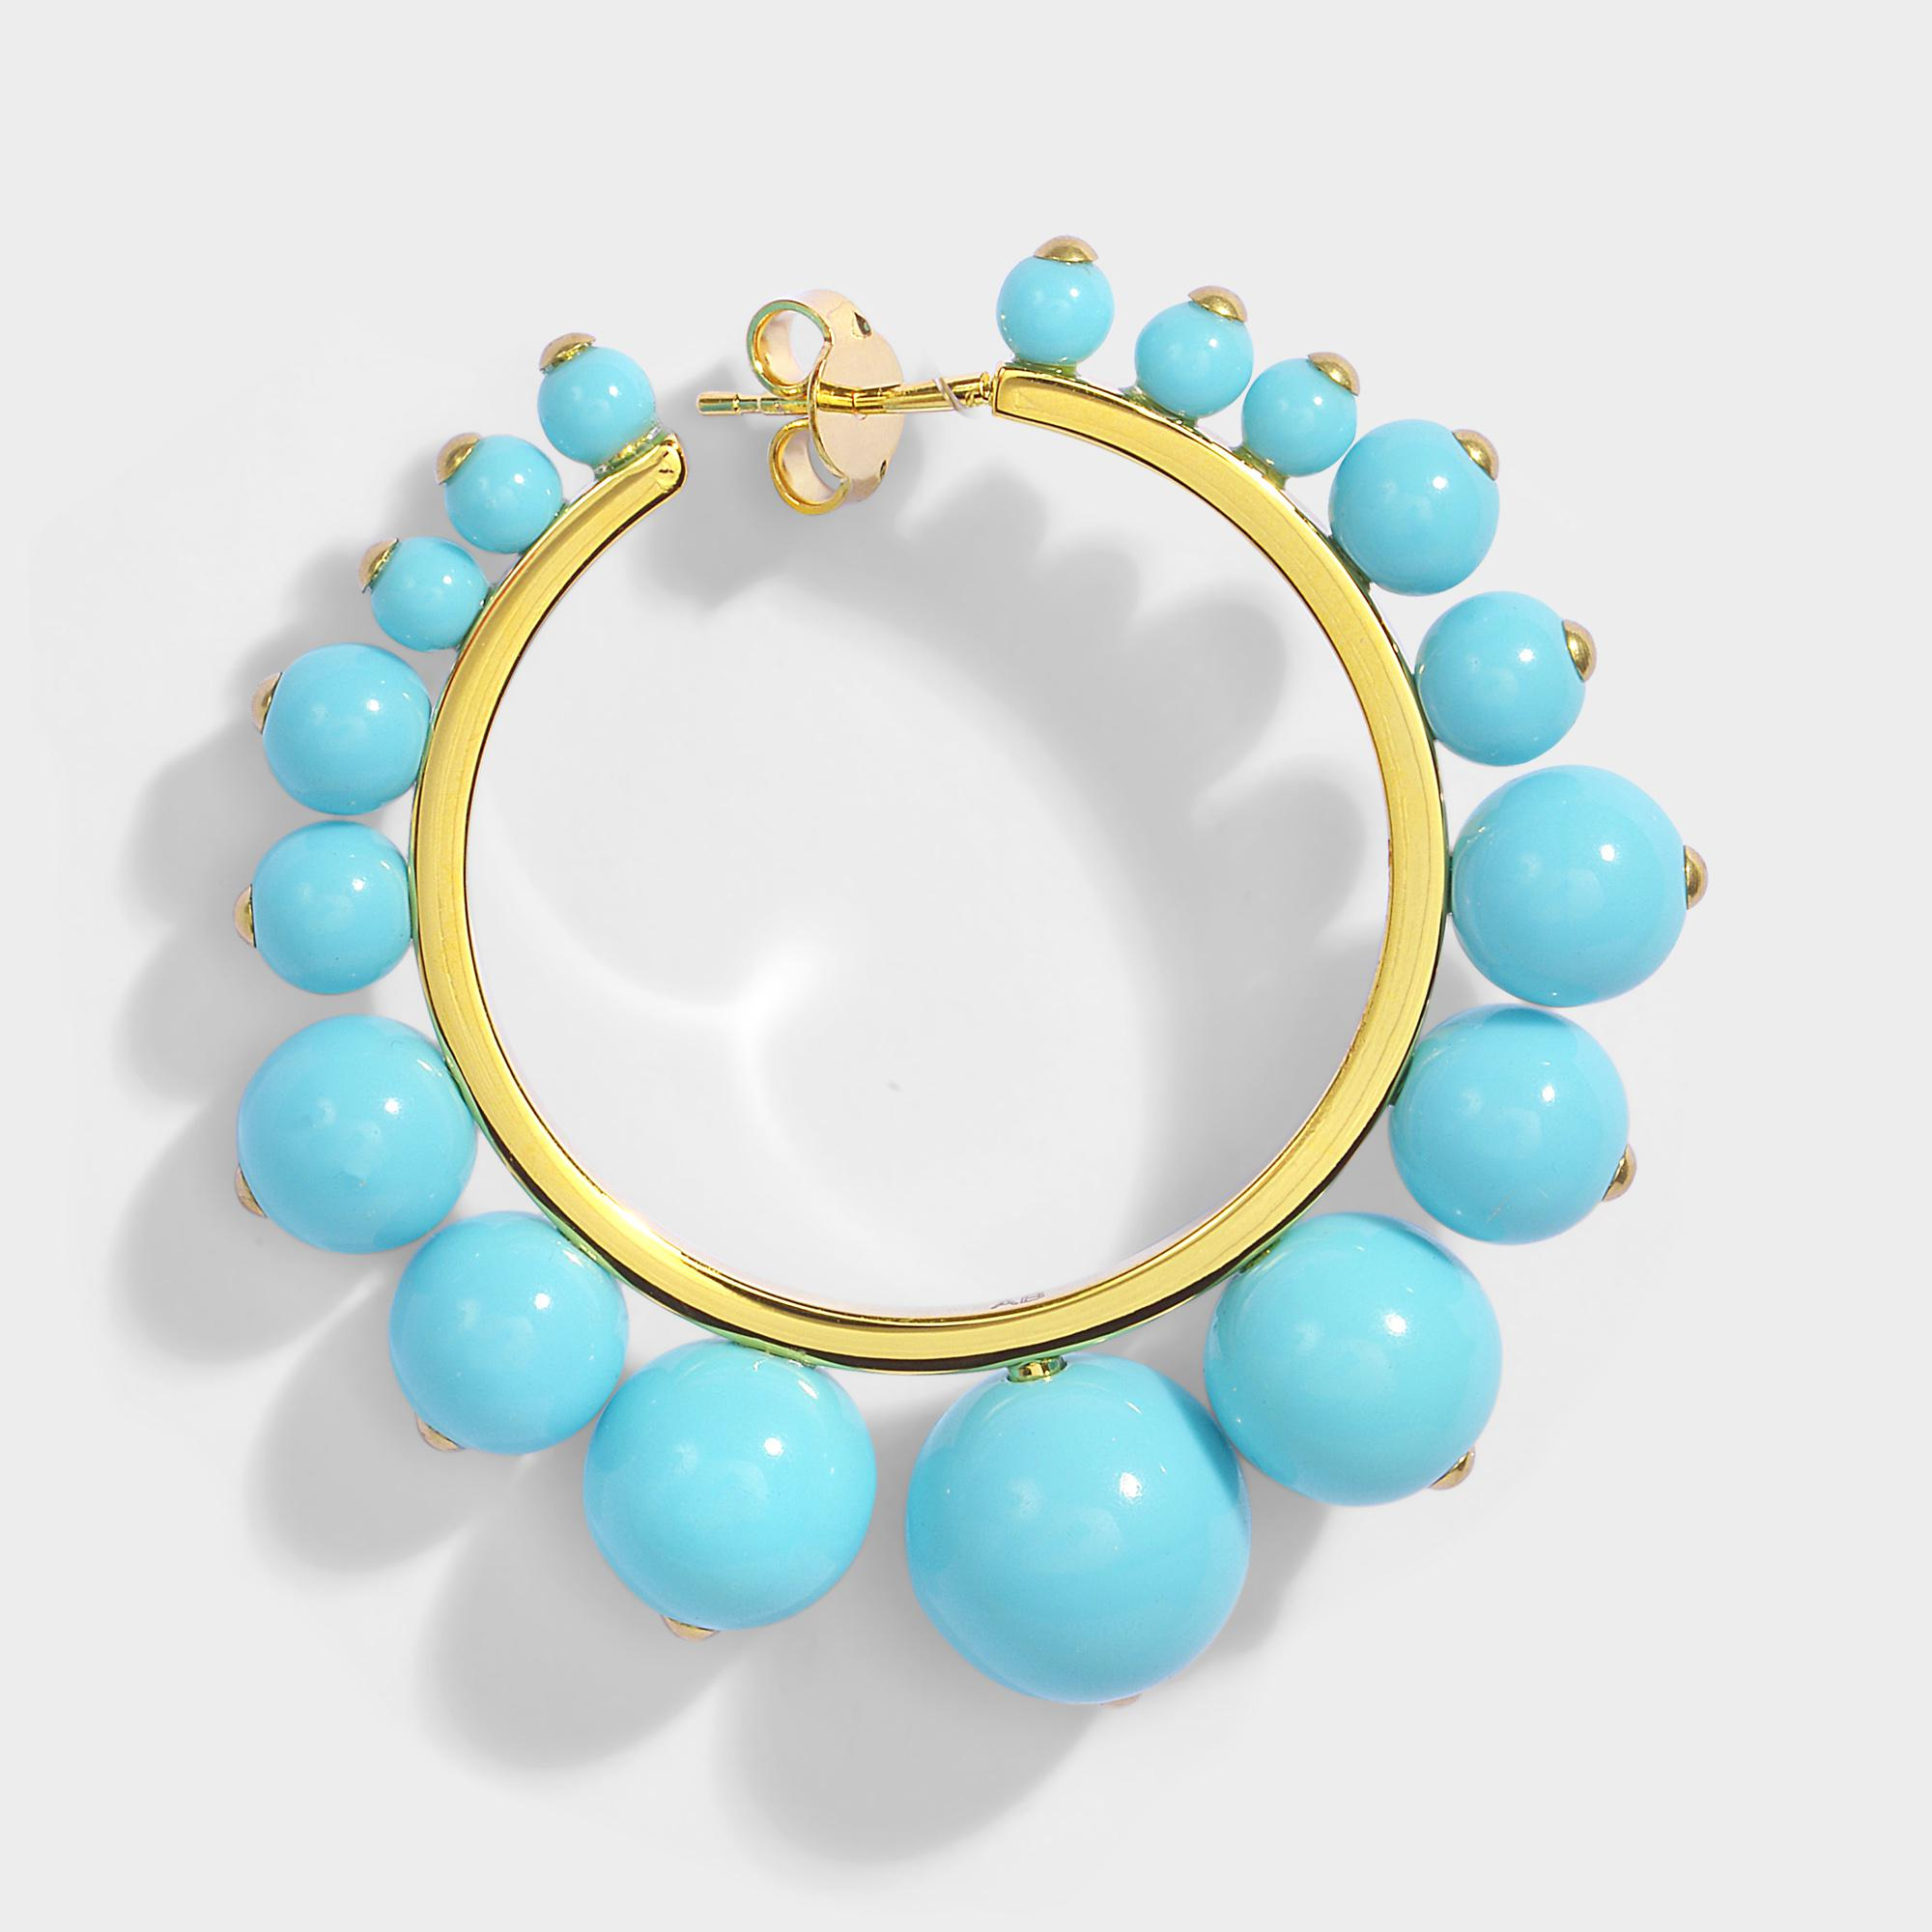 Ana Medium Earrings in Turquoise Color Pearls and 18K Gold-Plated Brass Aur qWmFViy